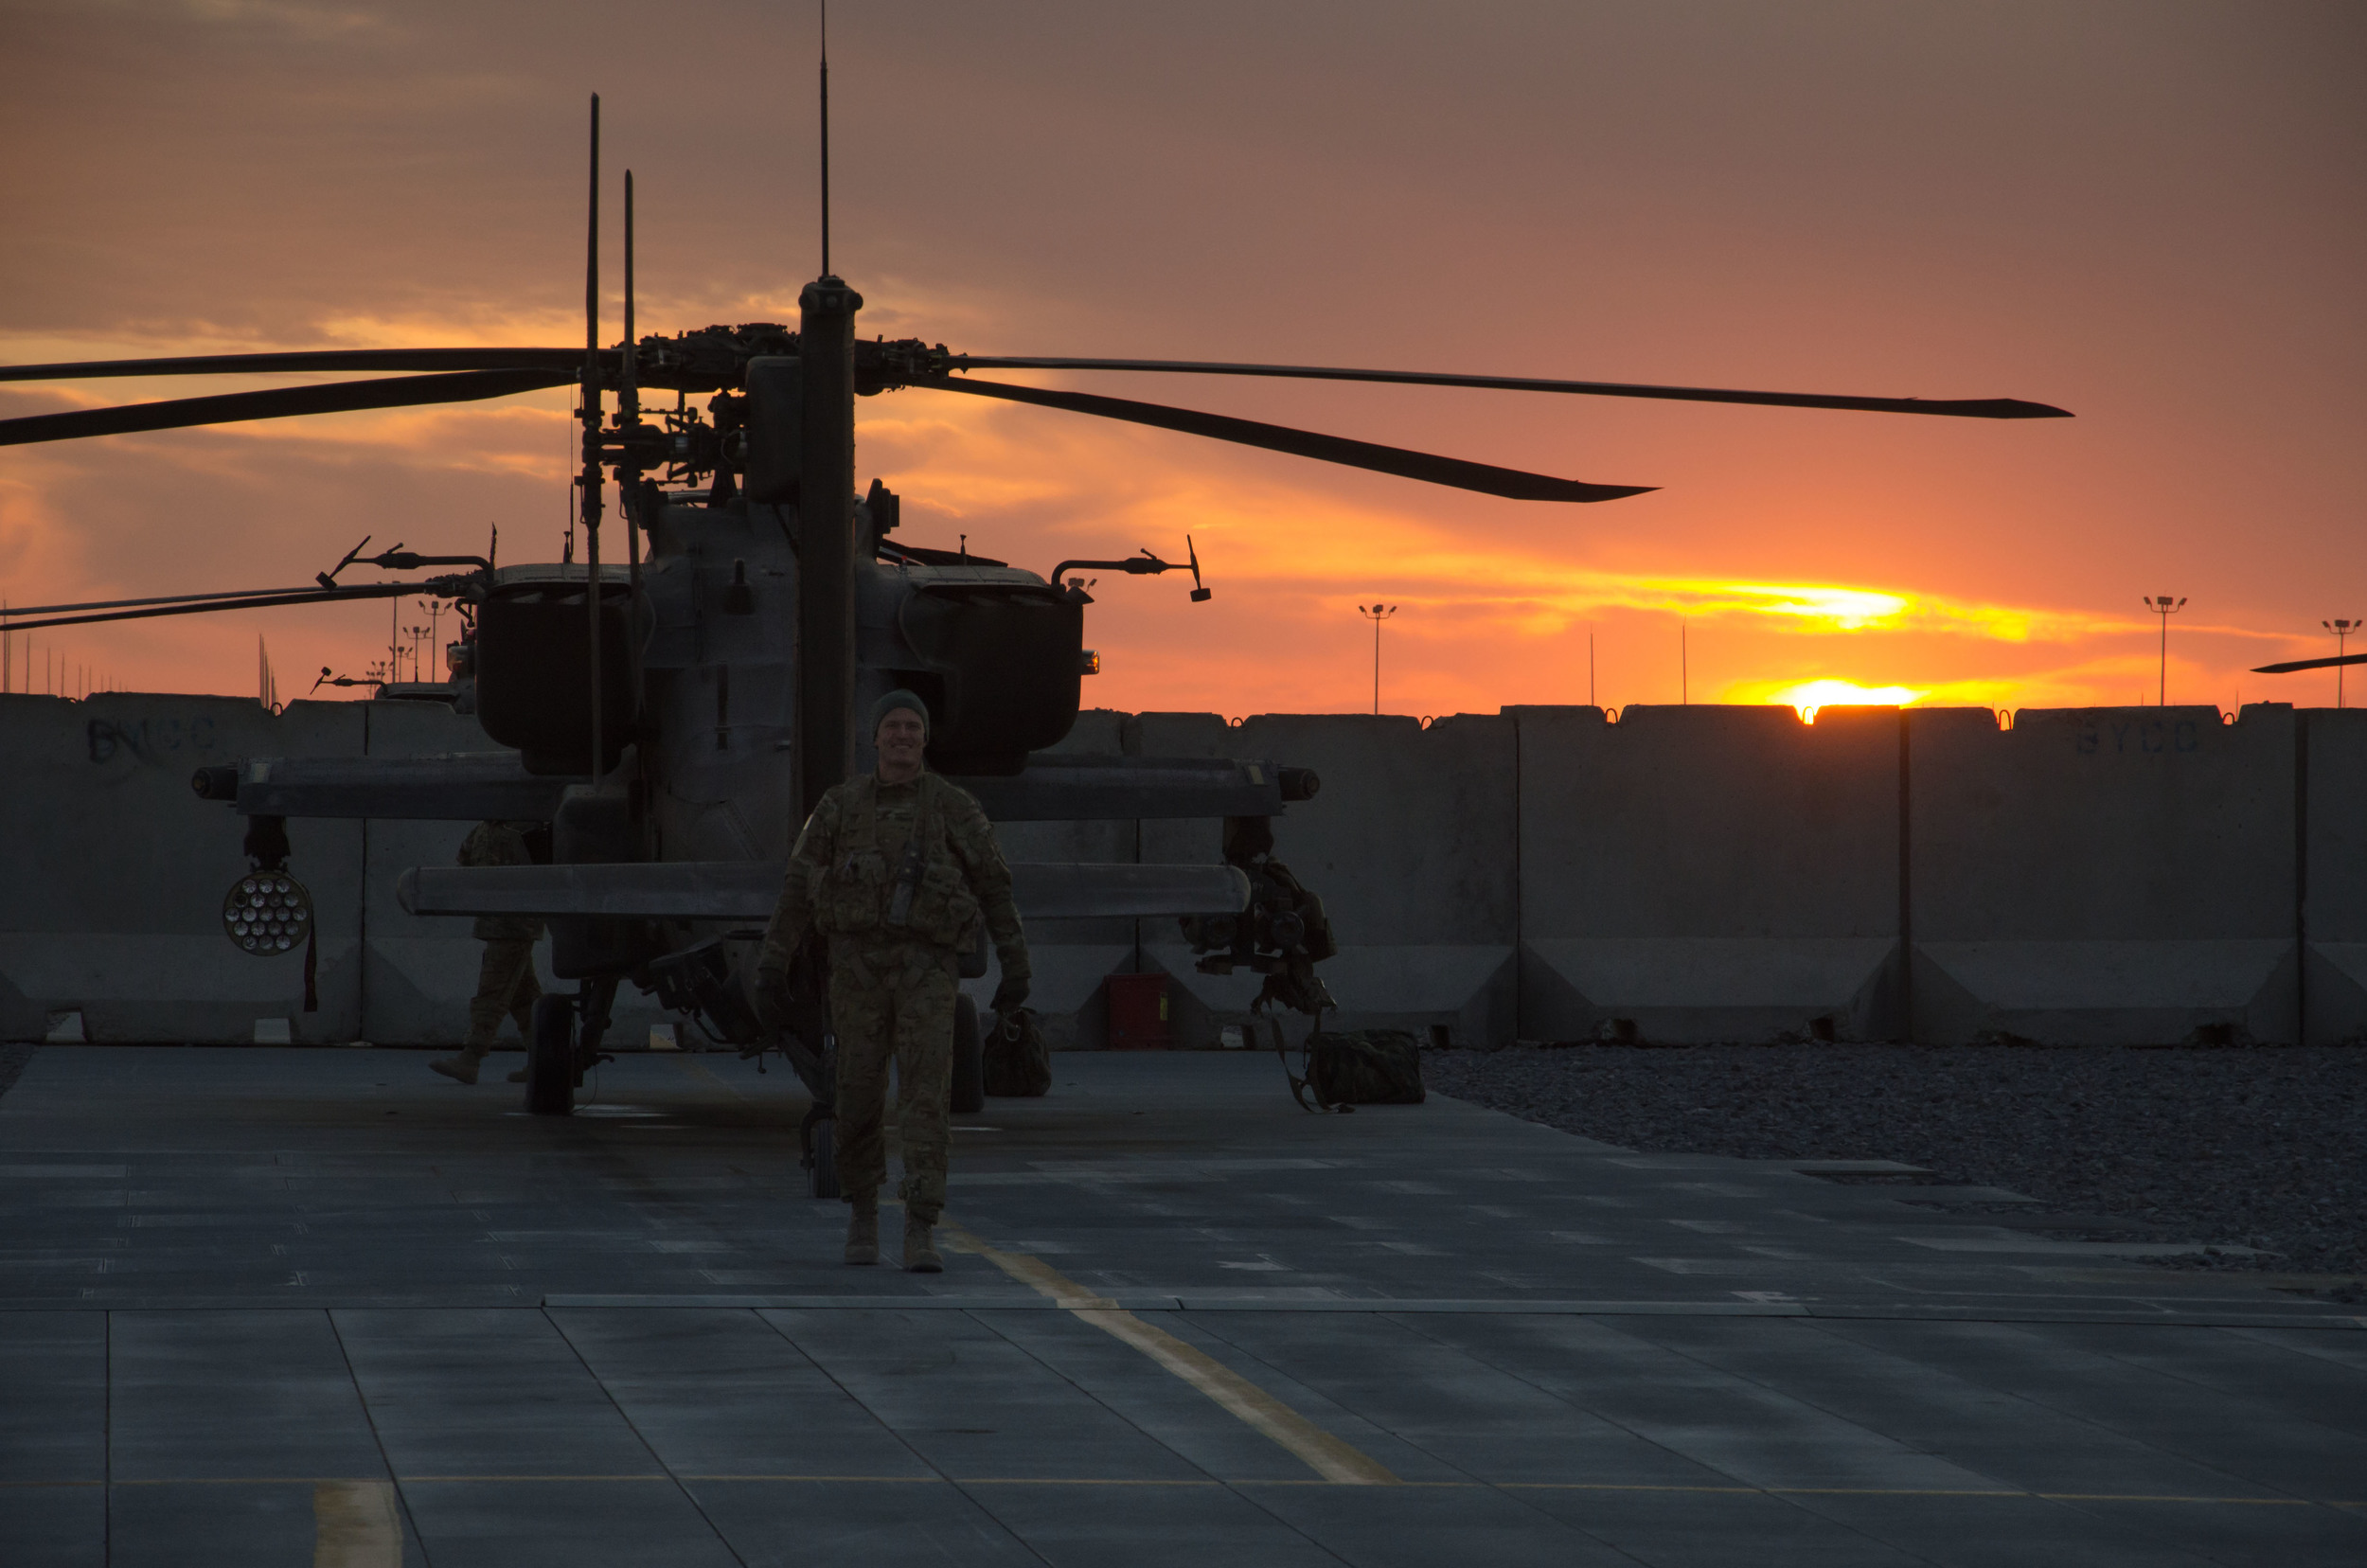 Apache pilot smiles for the camera as he finishes his shift, and ends his day with a beautiful evening sunset shot.